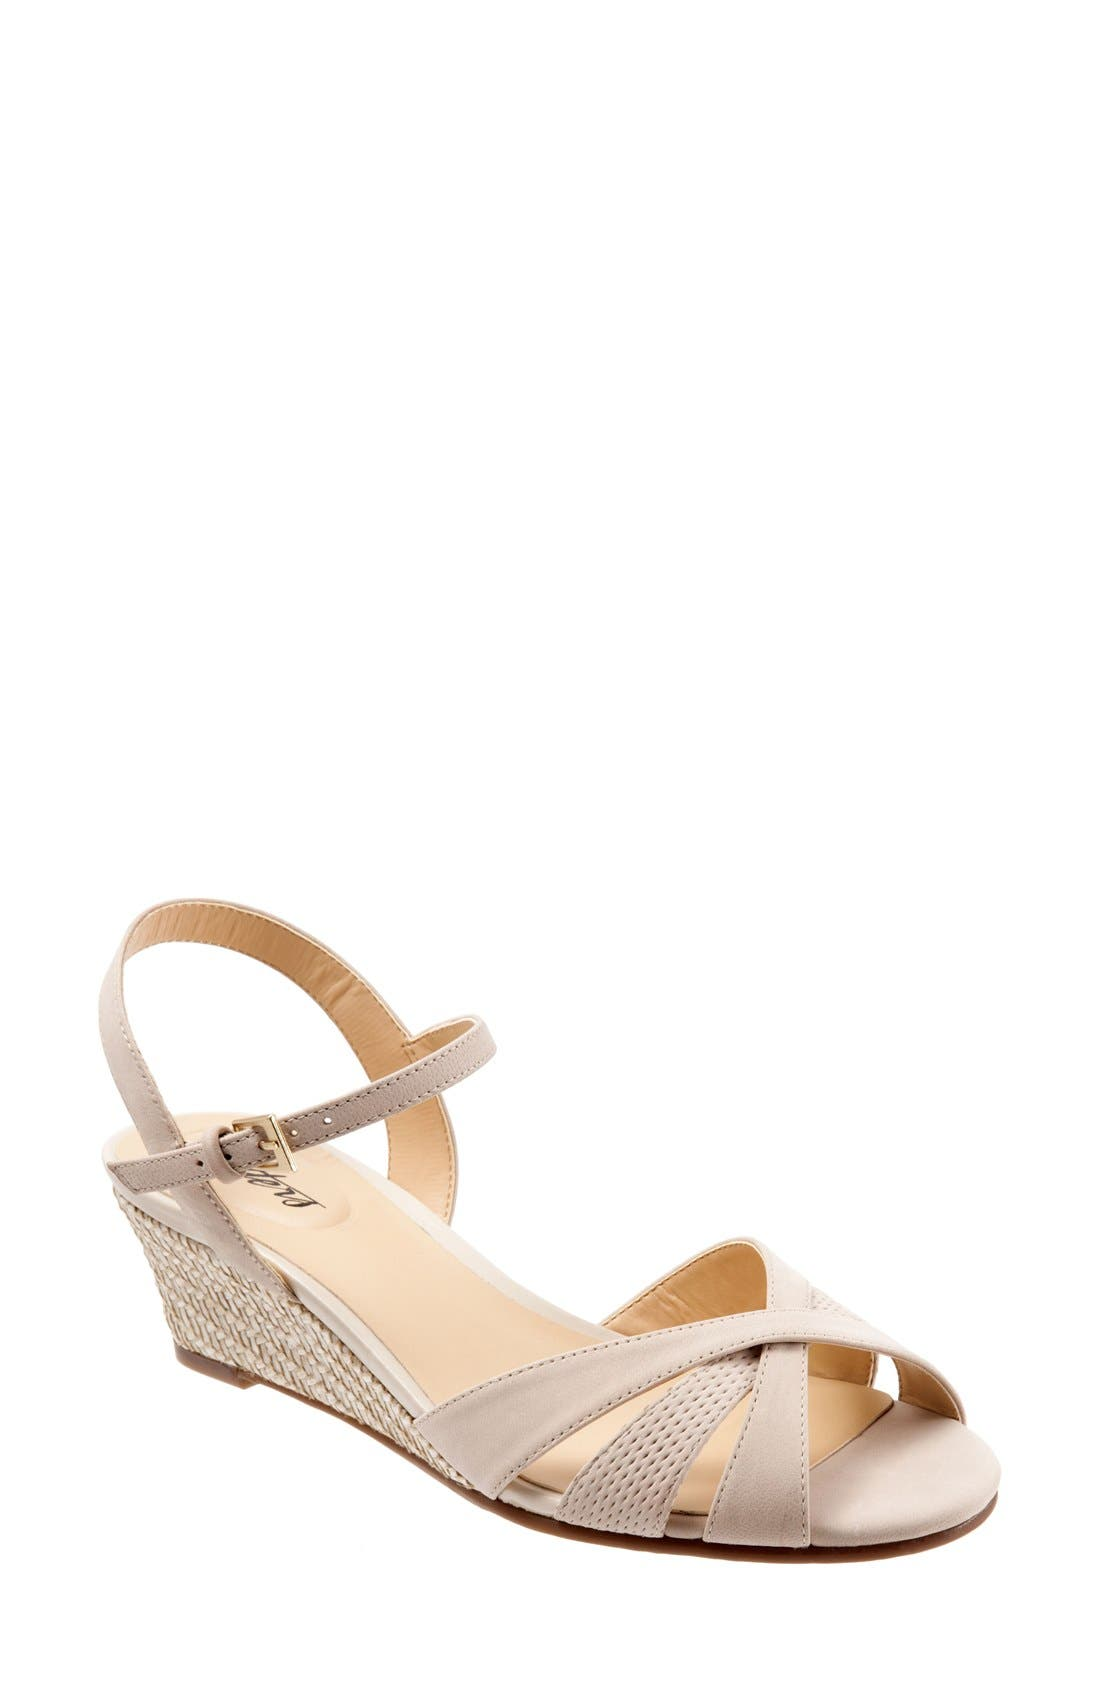 'Mickey' Wedge Sandal,                             Main thumbnail 7, color,